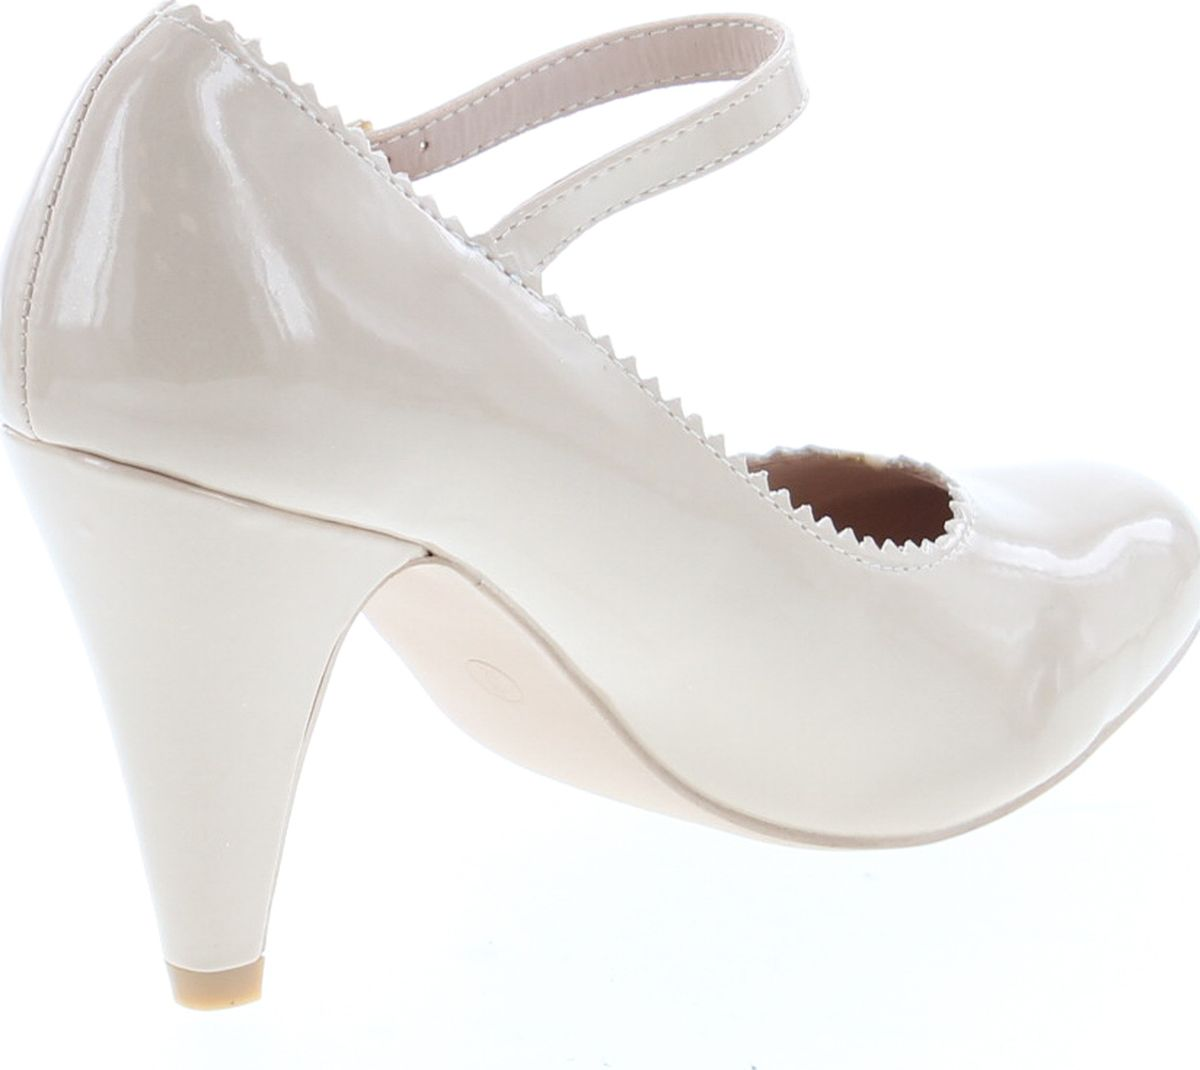 Bella Marie Women/'s Mary Jane Ankle Strappy Scalloped Mid Heel Dress Pump